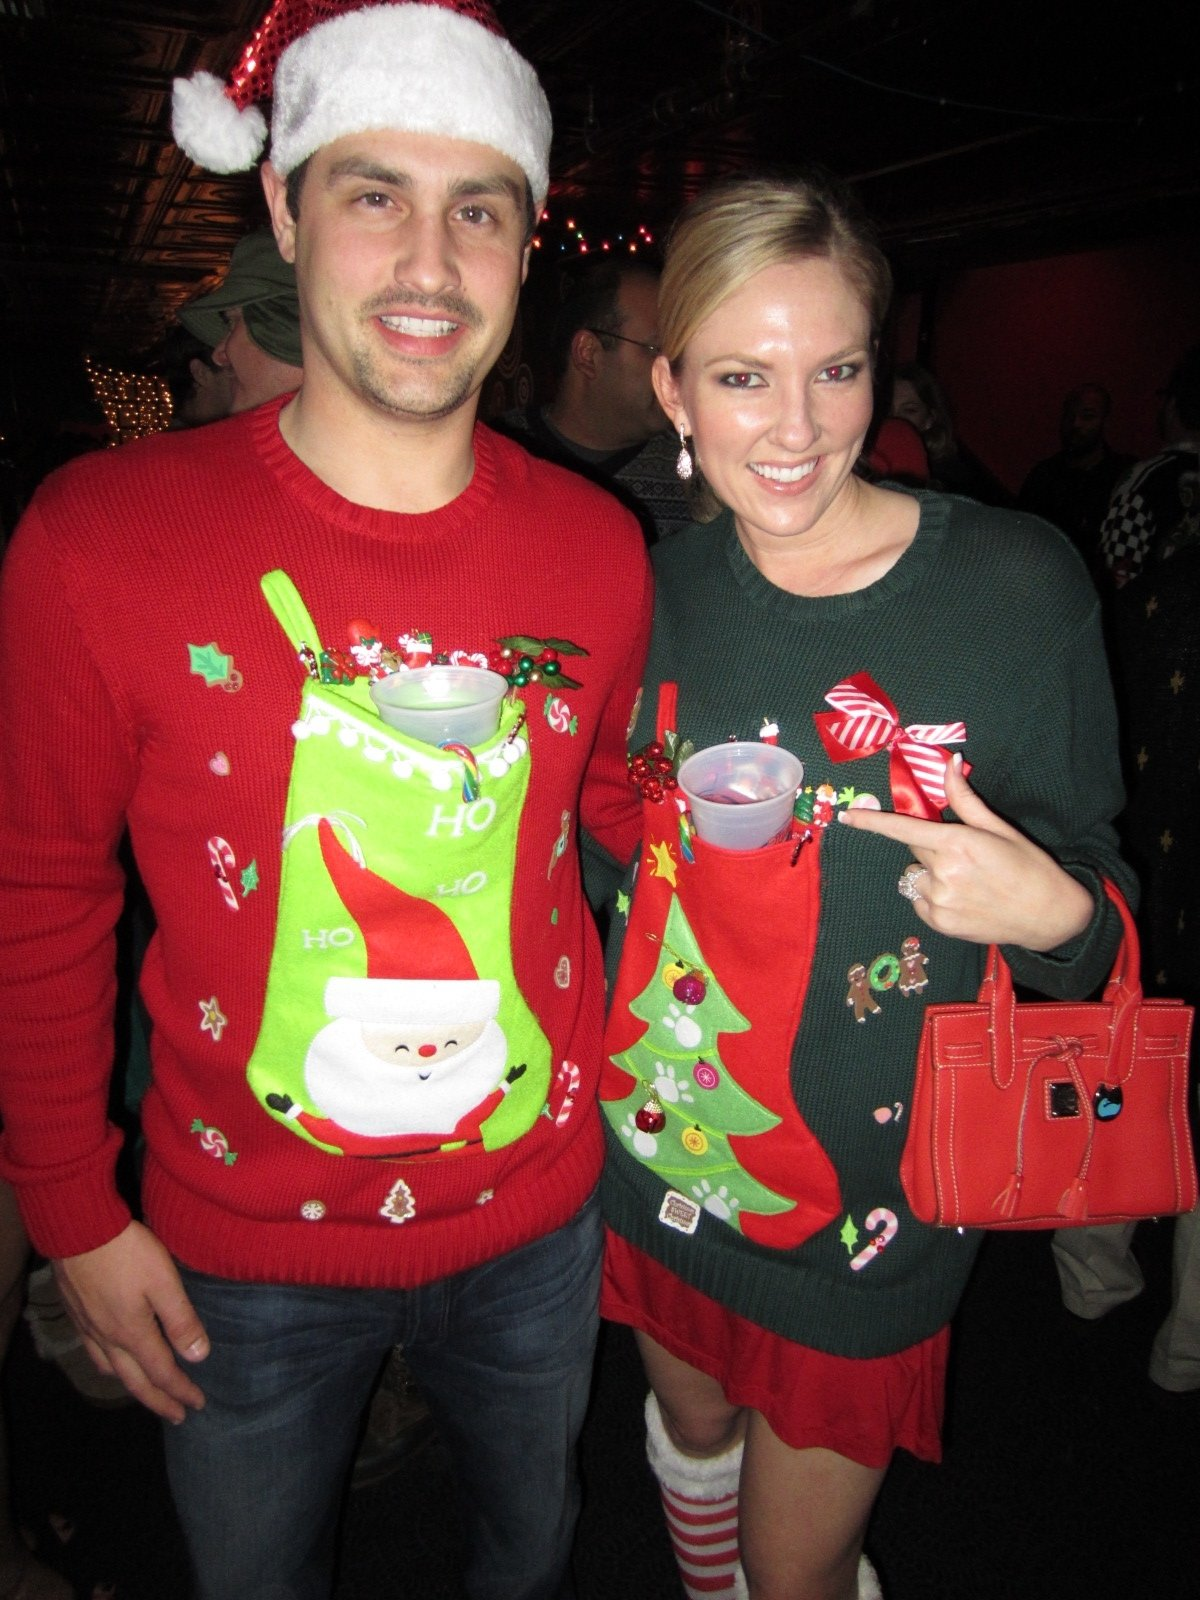 10 Awesome Ugly Christmas Sweater Ideas For Couples ugly christmas sweaters that hold beers ugly xmas sweater ideas 1 2020